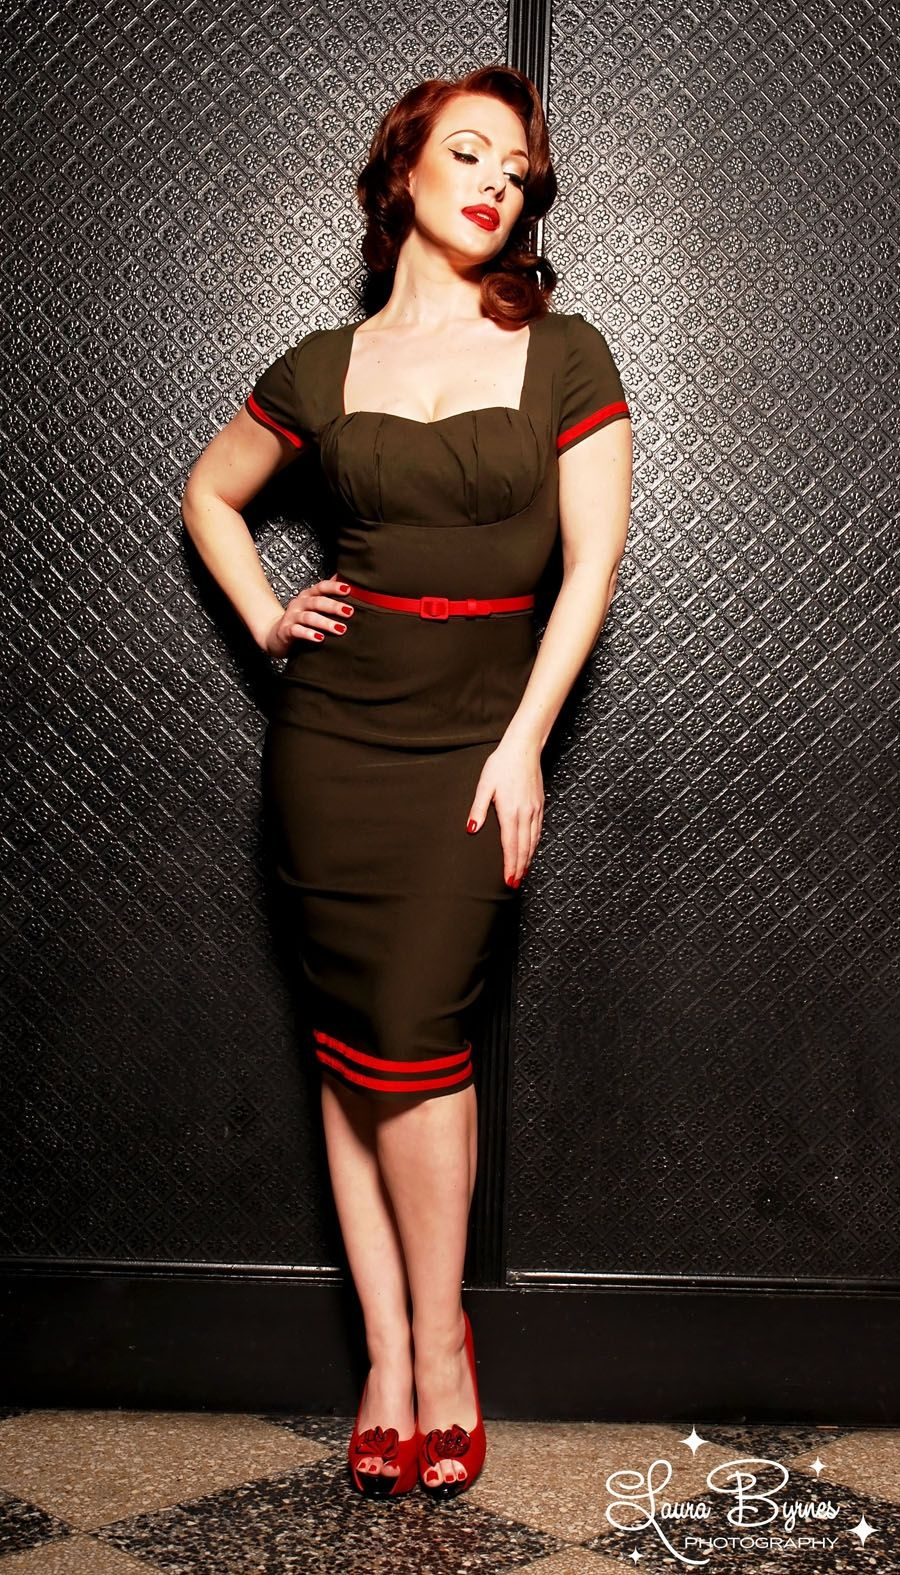 military pinup dress in olive green with red details from pinup